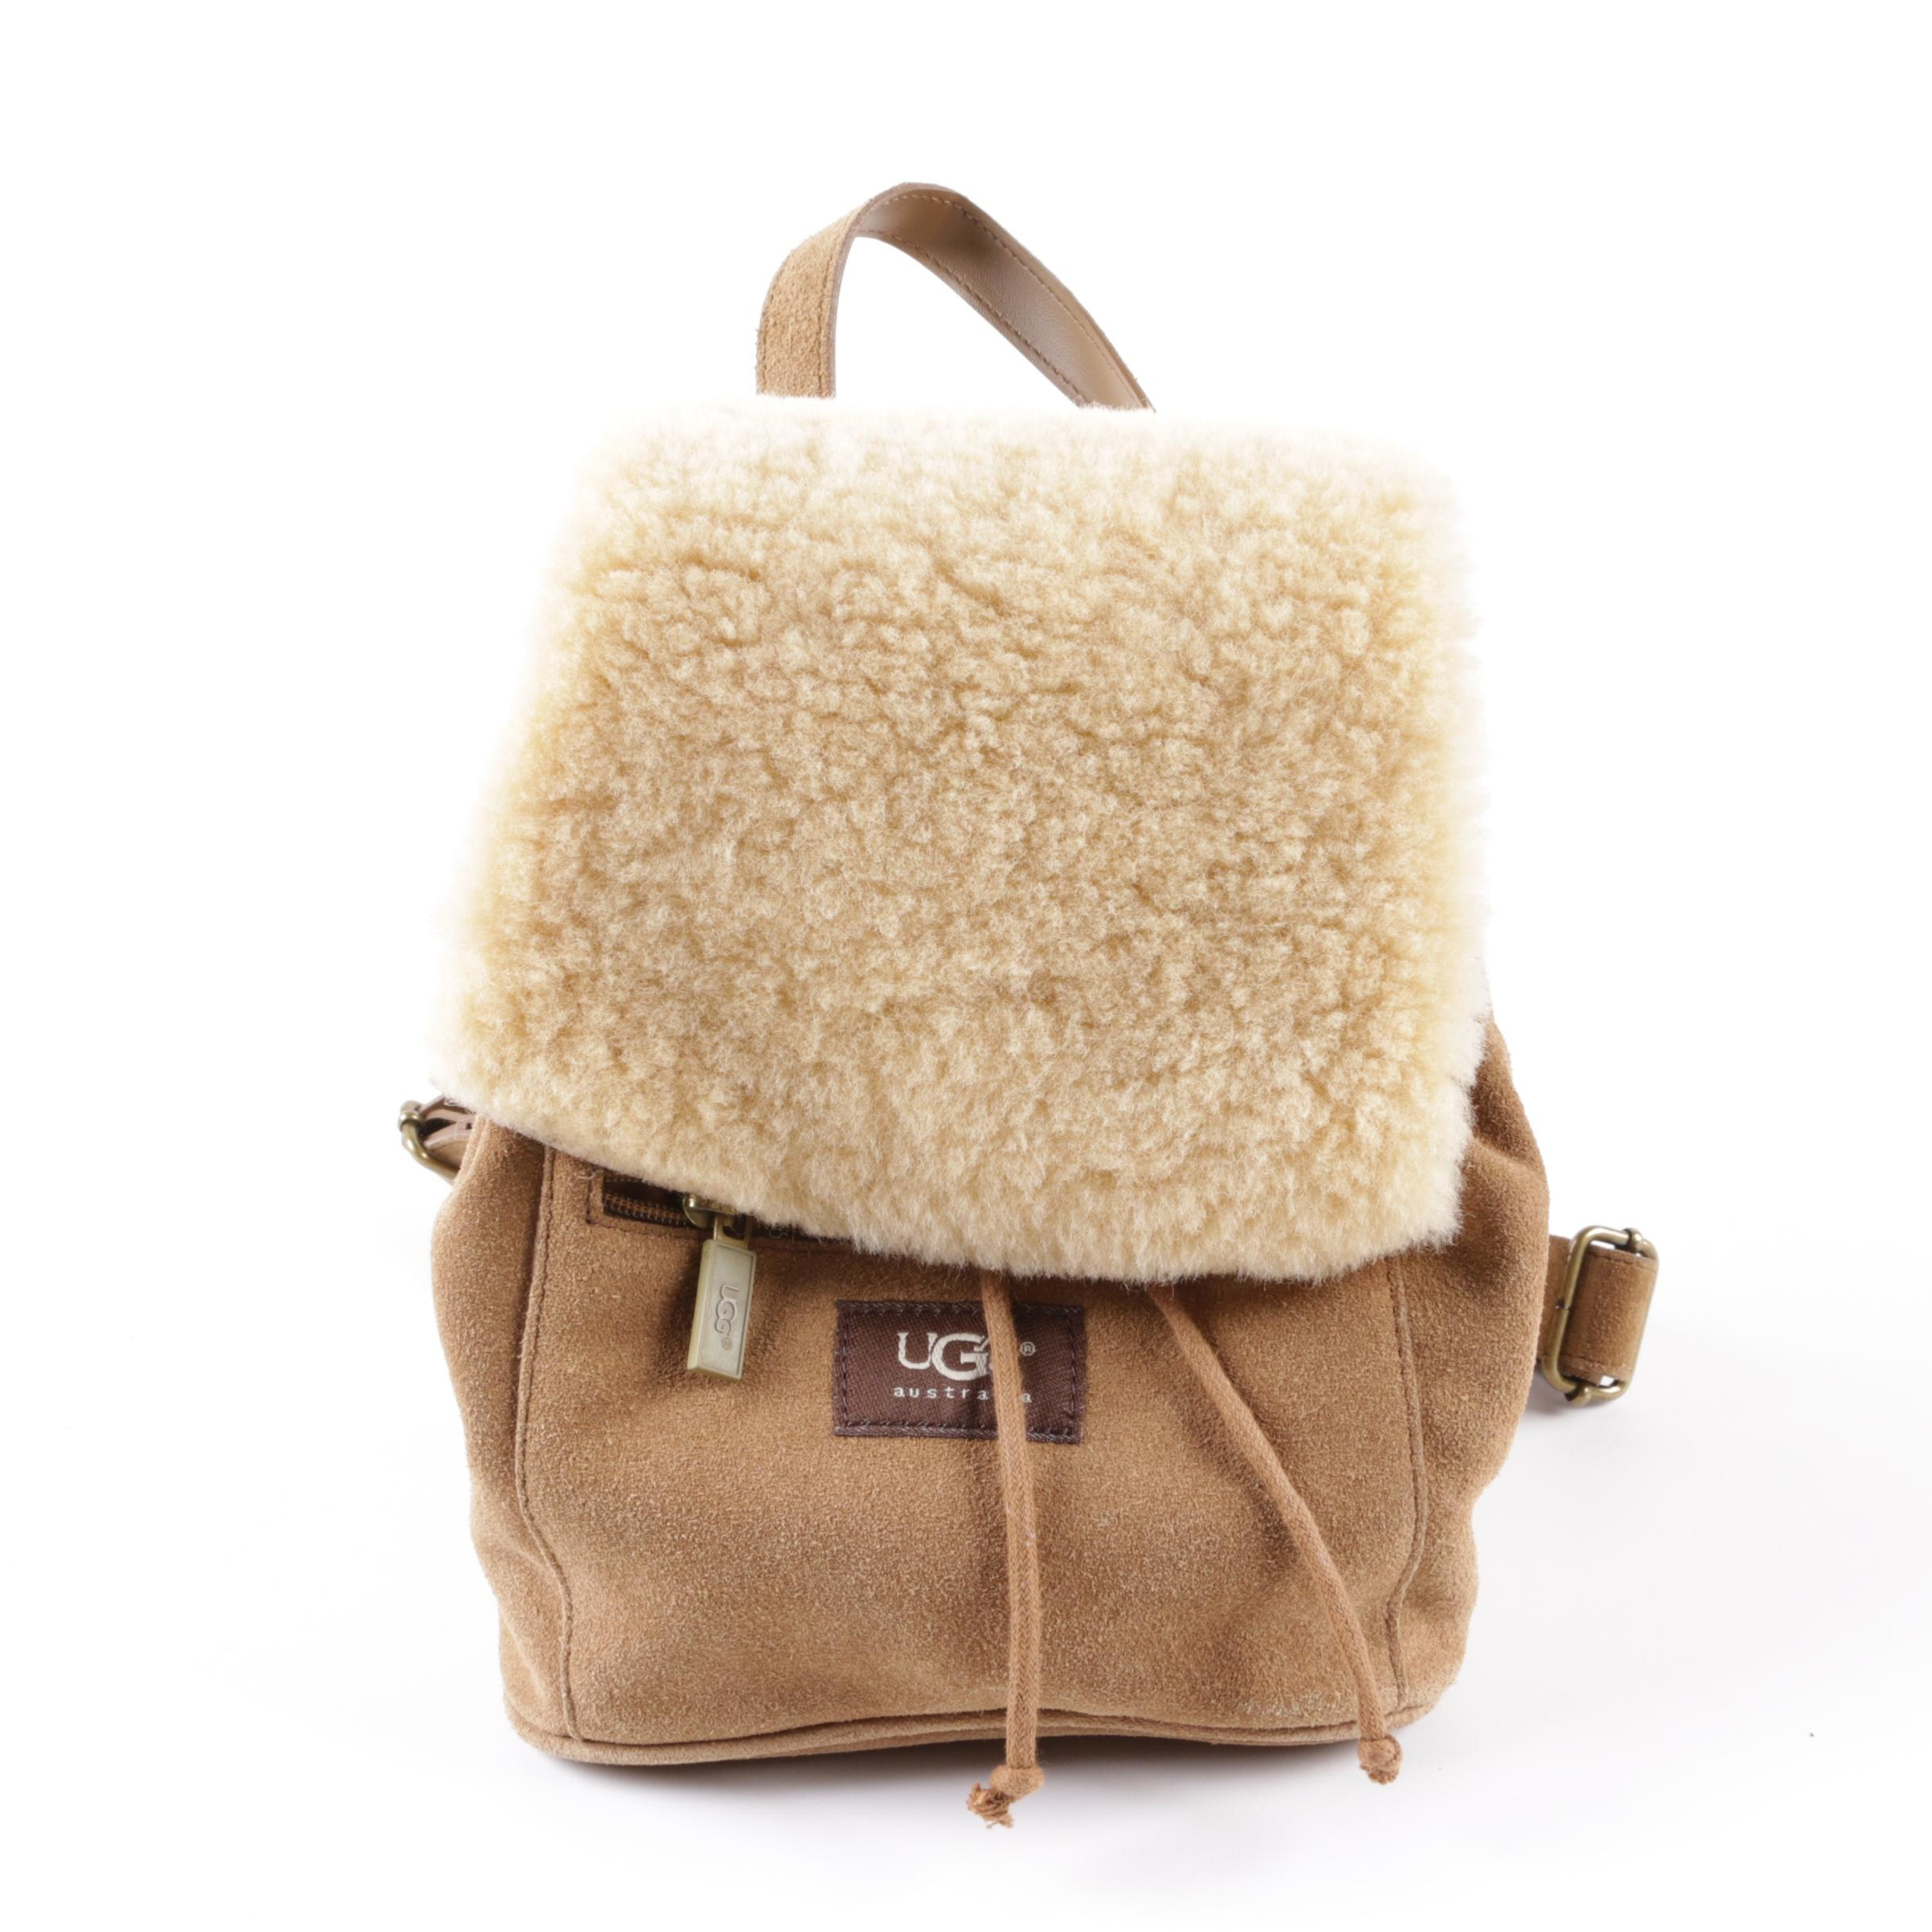 Ugg Australia Baby Mini Drawstring Backpack